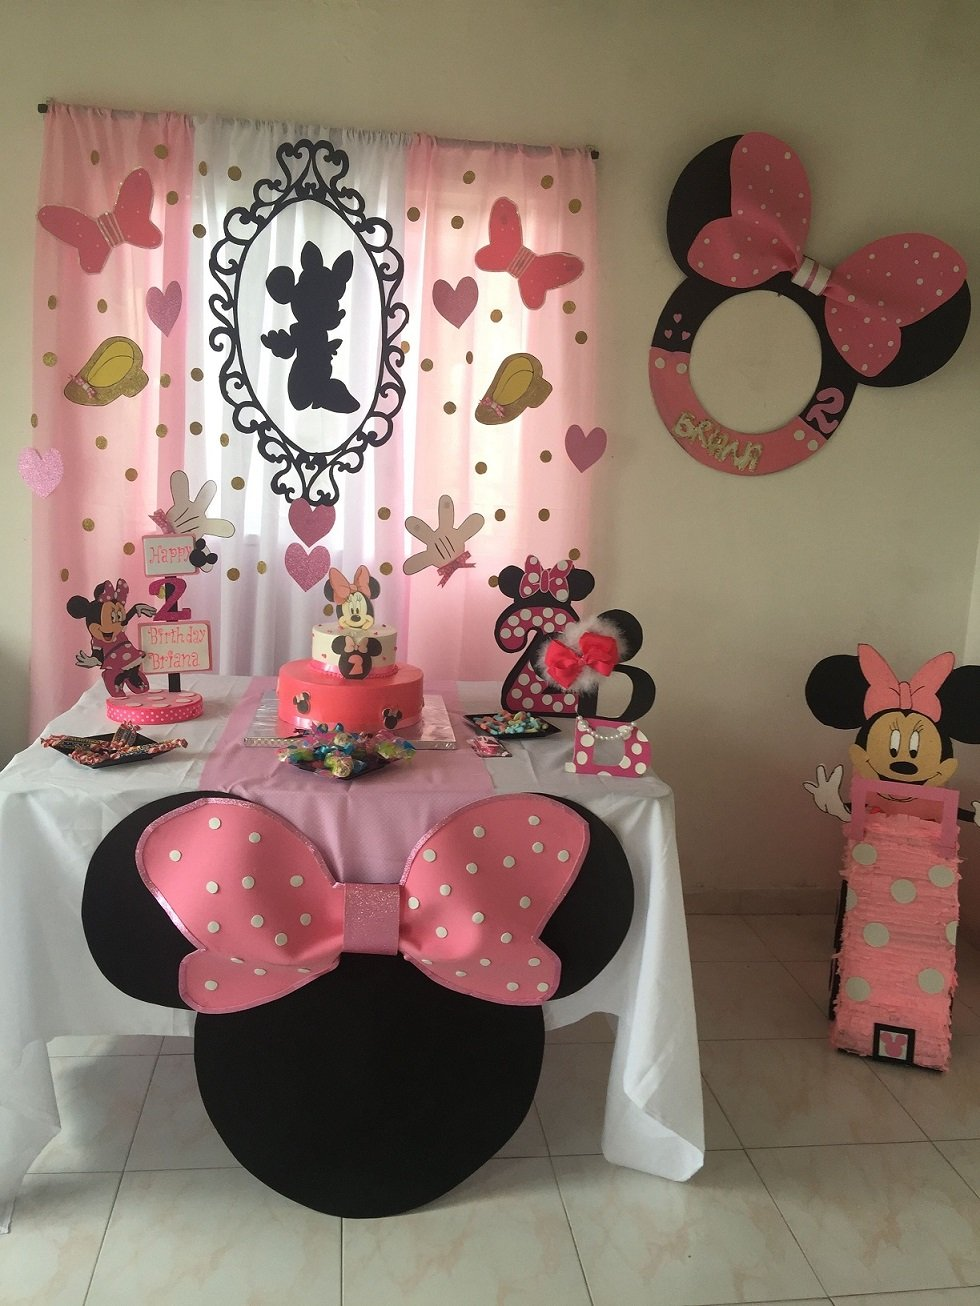 Minnie Mouse theme for first birthday party of girl | Minnie Mouse theme decoration ideas